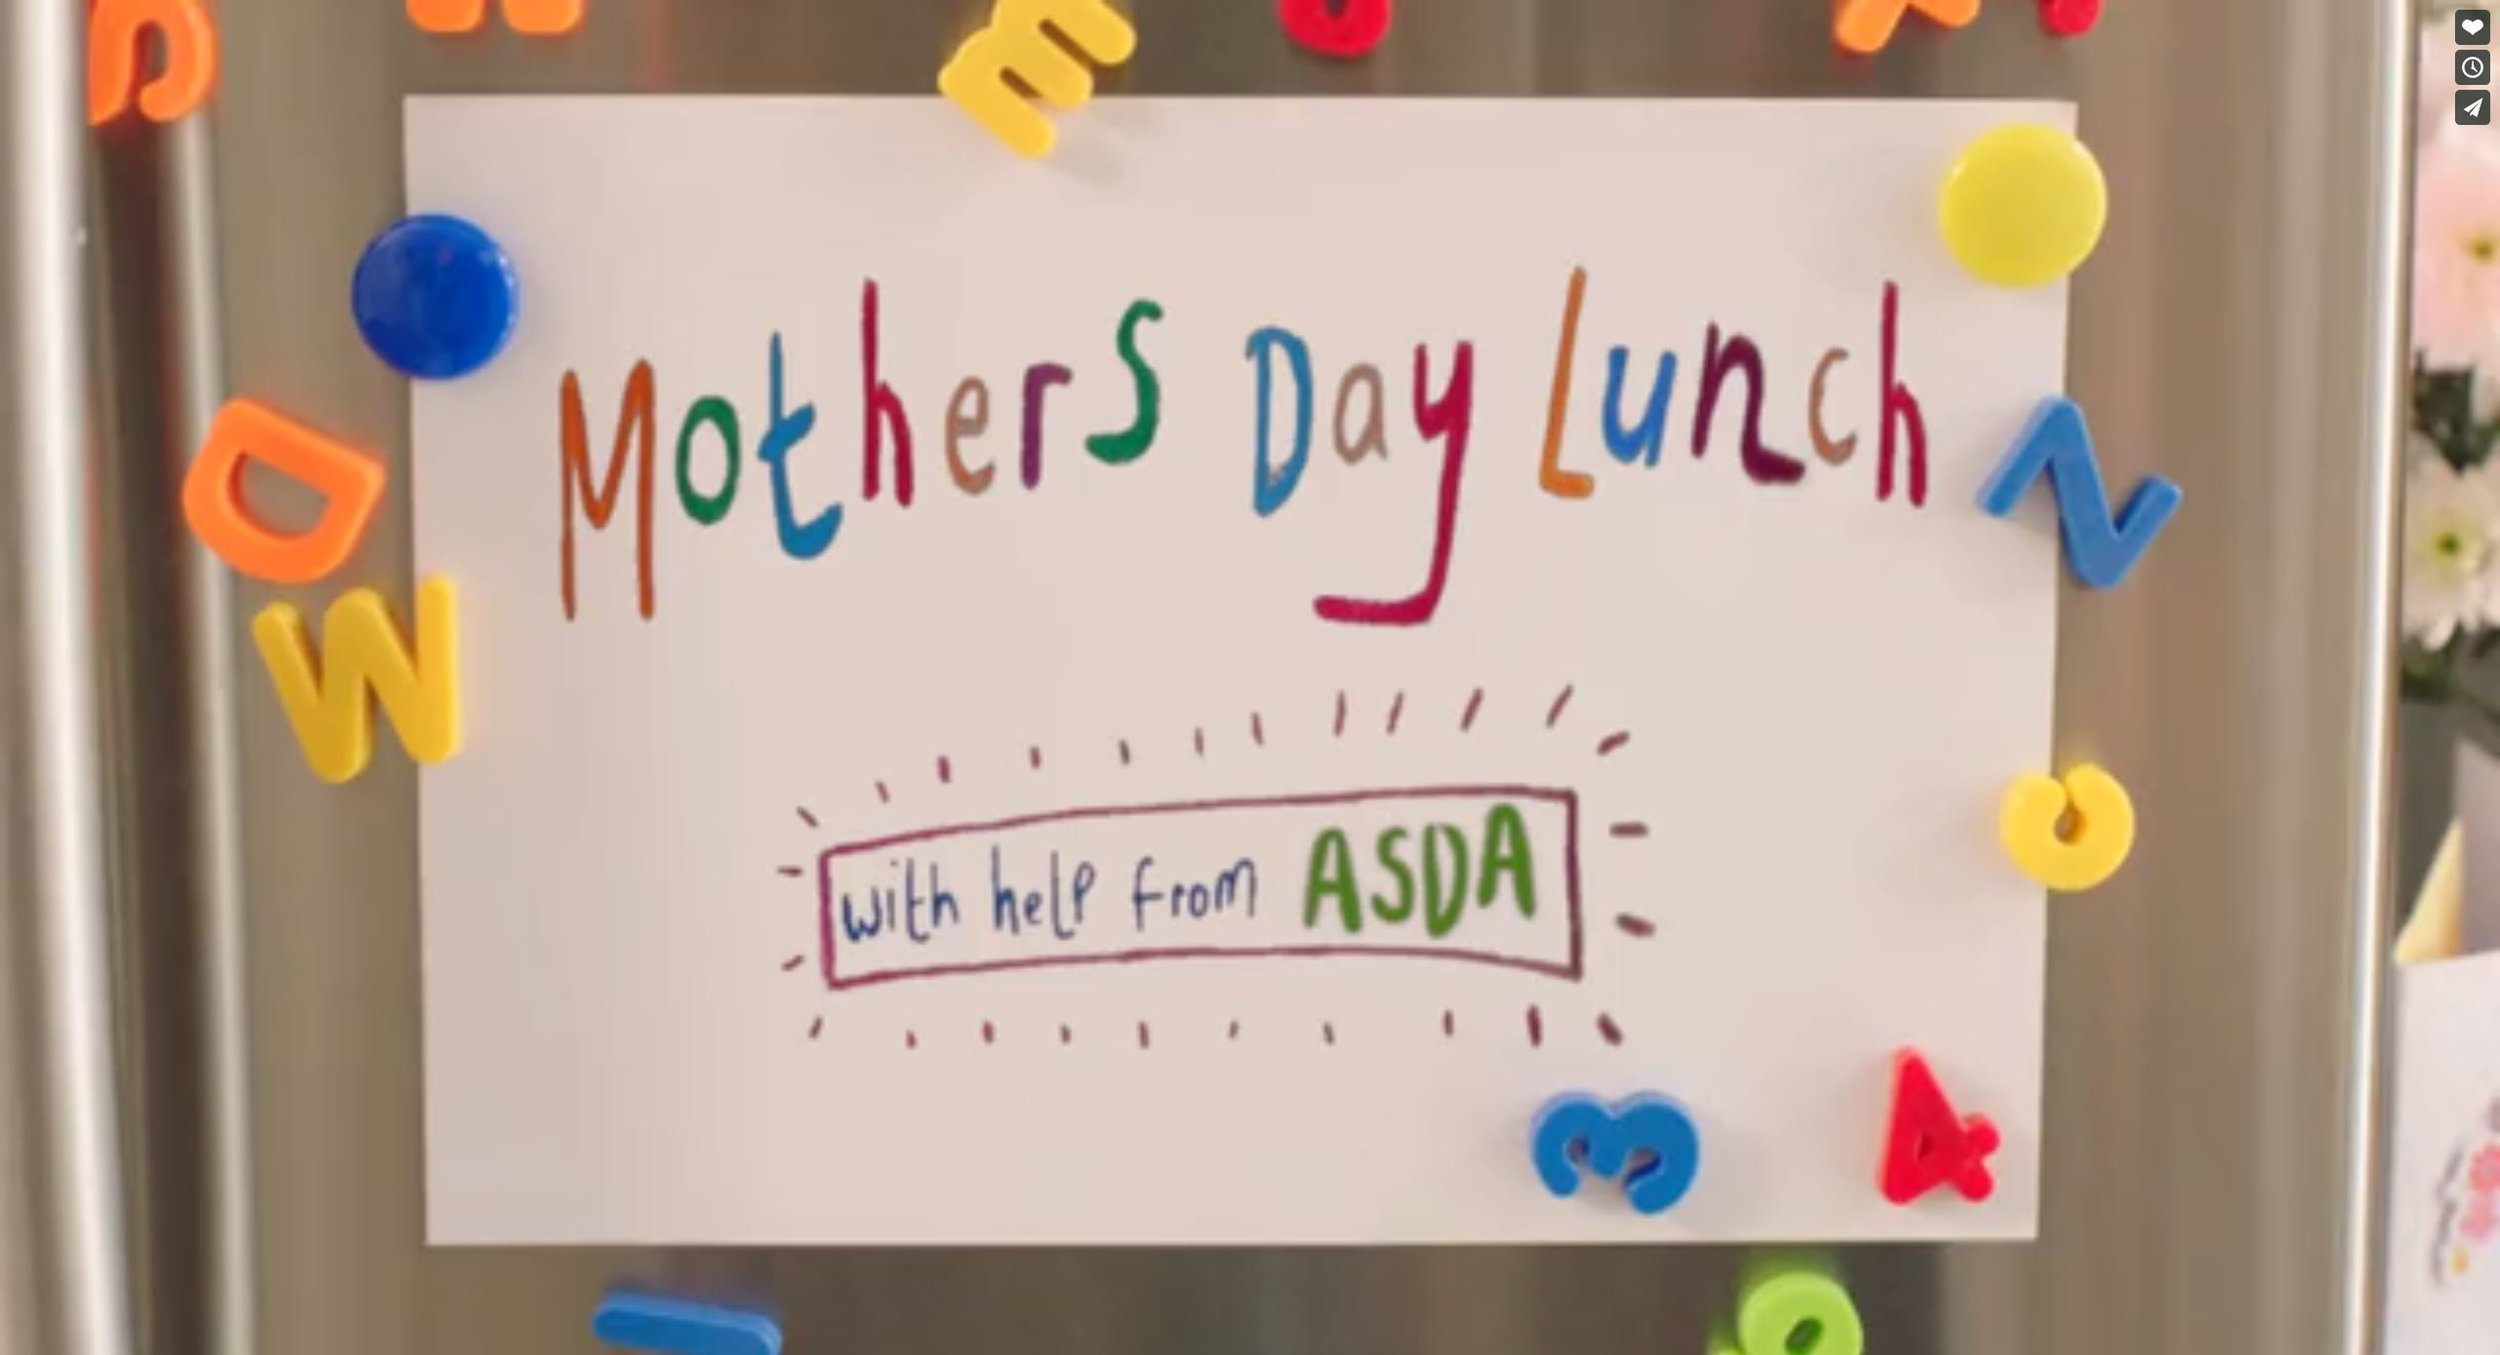 Asda - Mothers Day